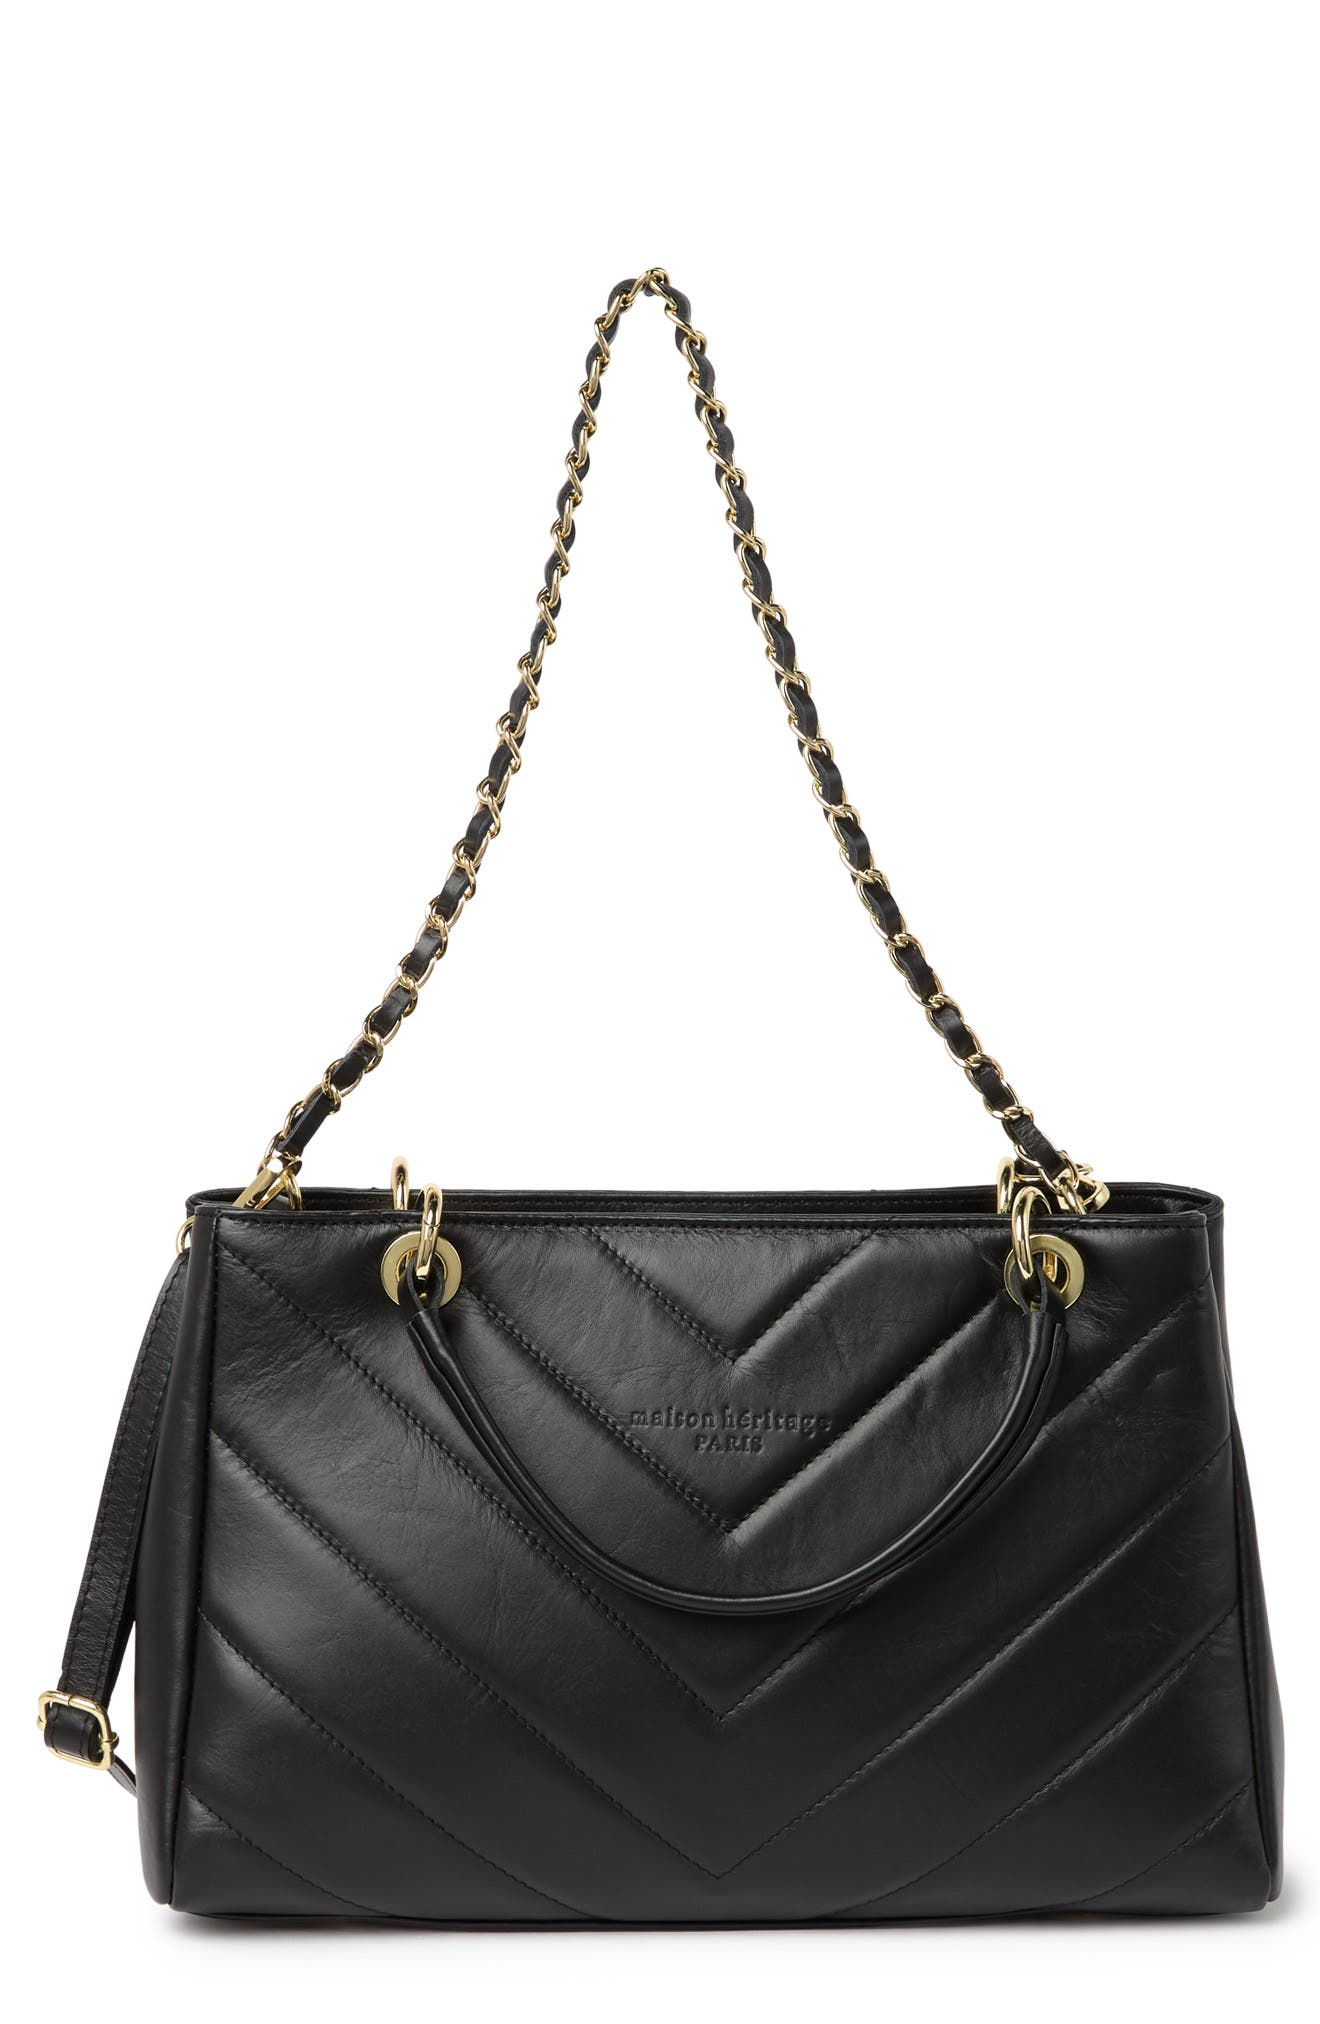 Image of Maison Heritage Evi Sac Main Quilted Leather Shoulder Bag